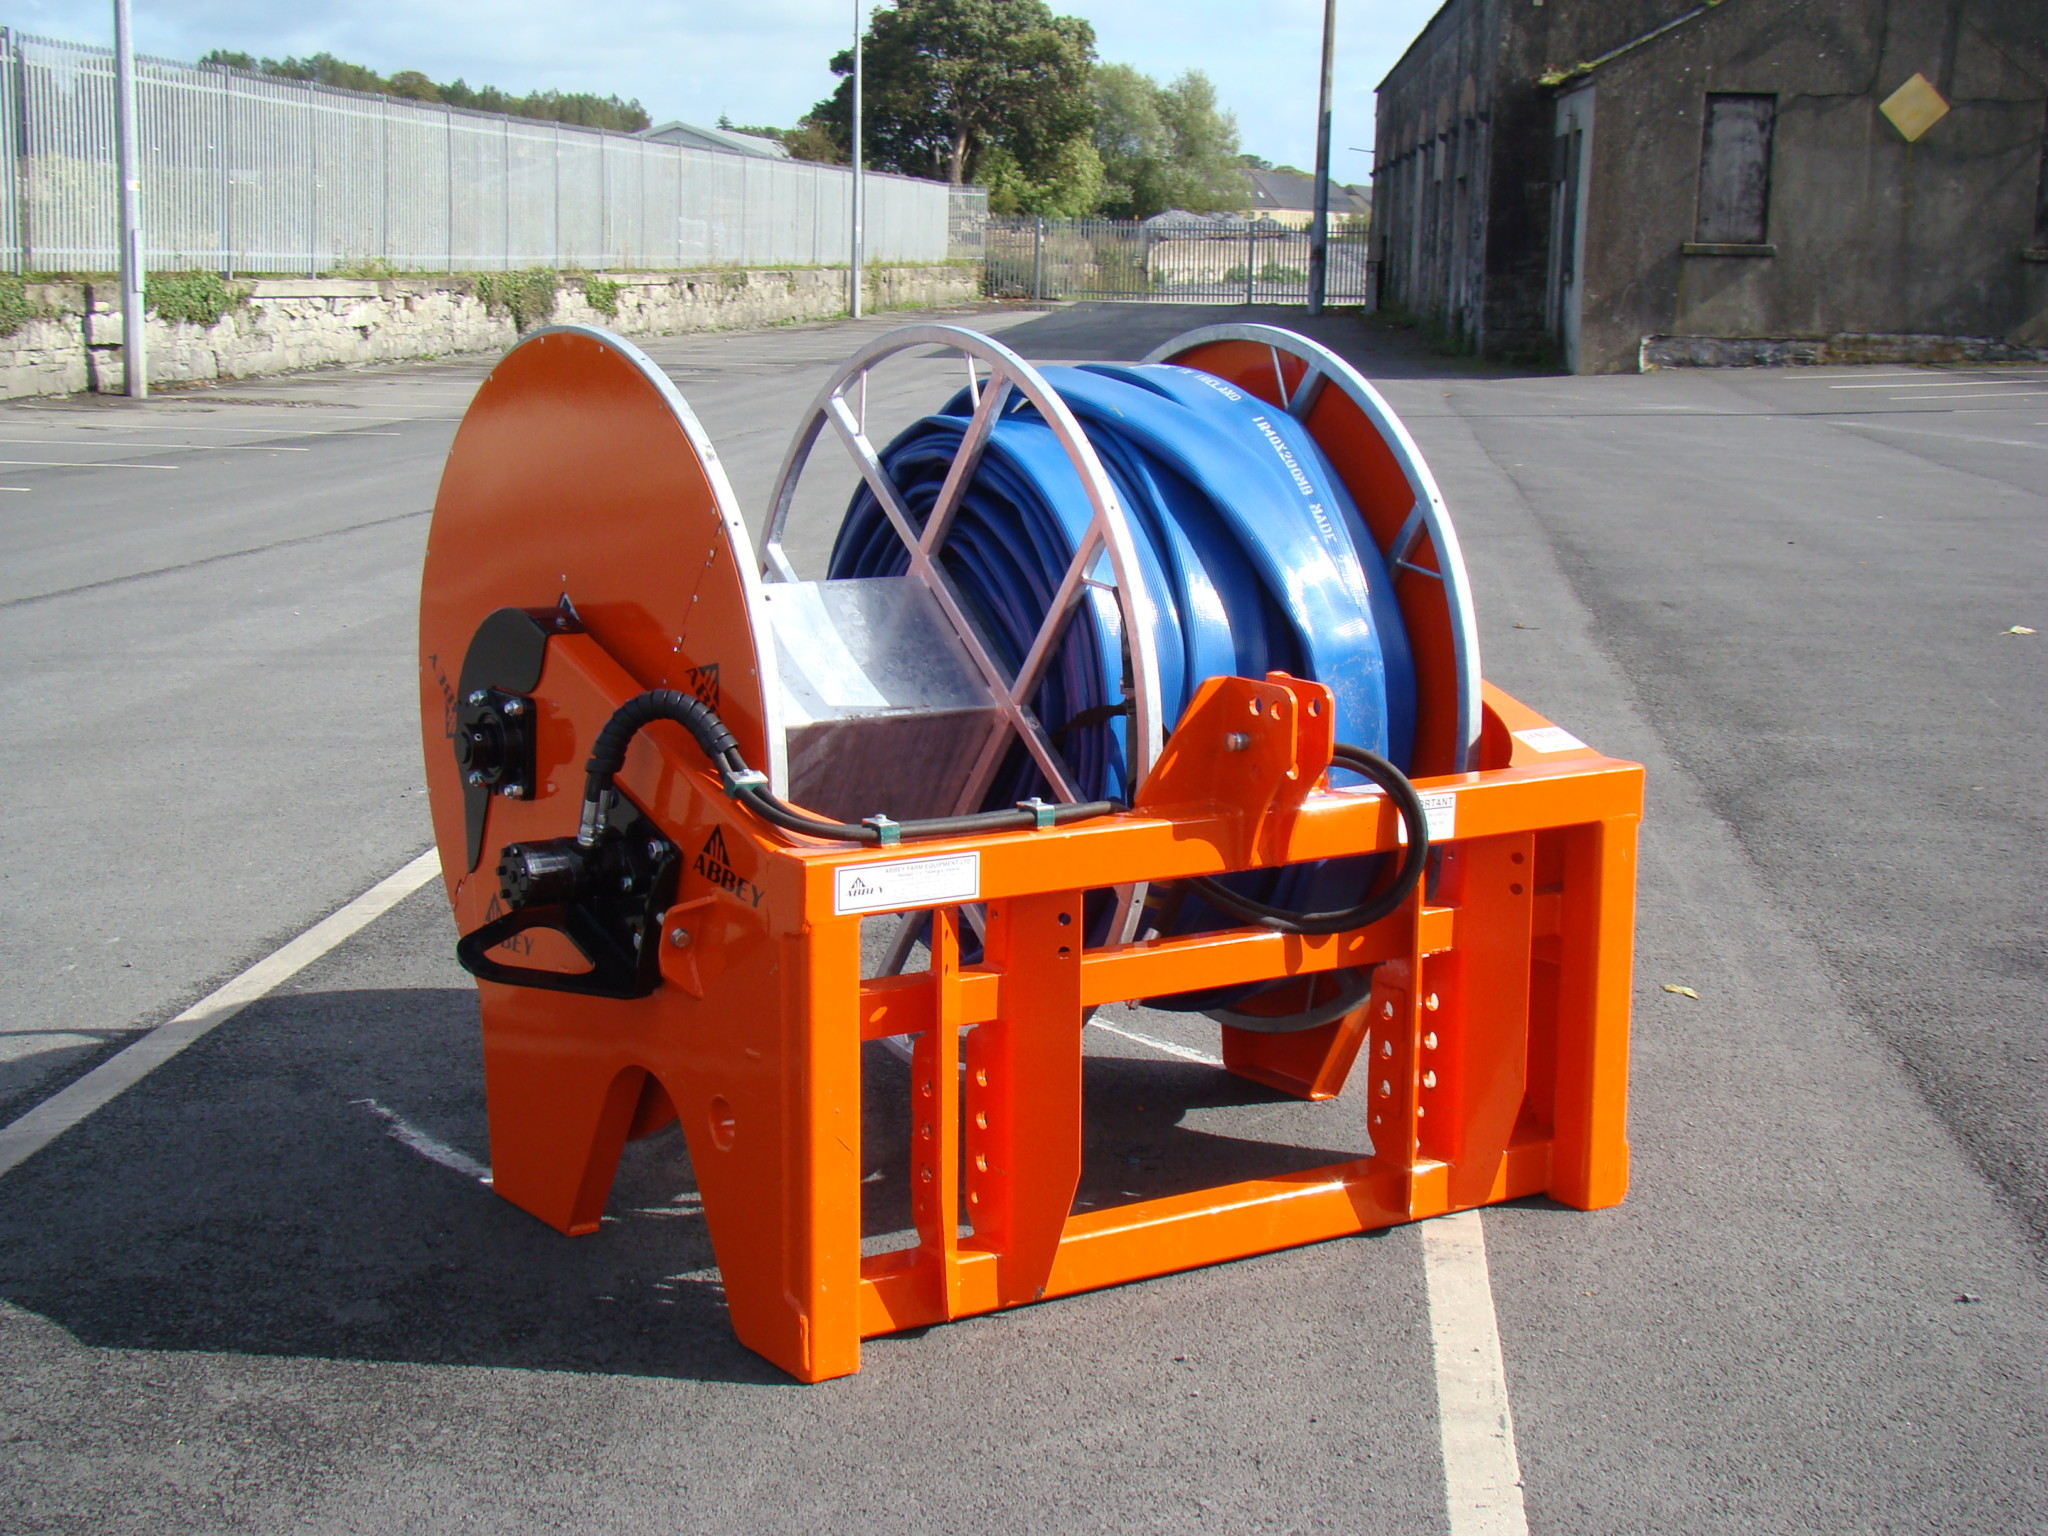 Abbey Slurry Umbilical System Machinery Range